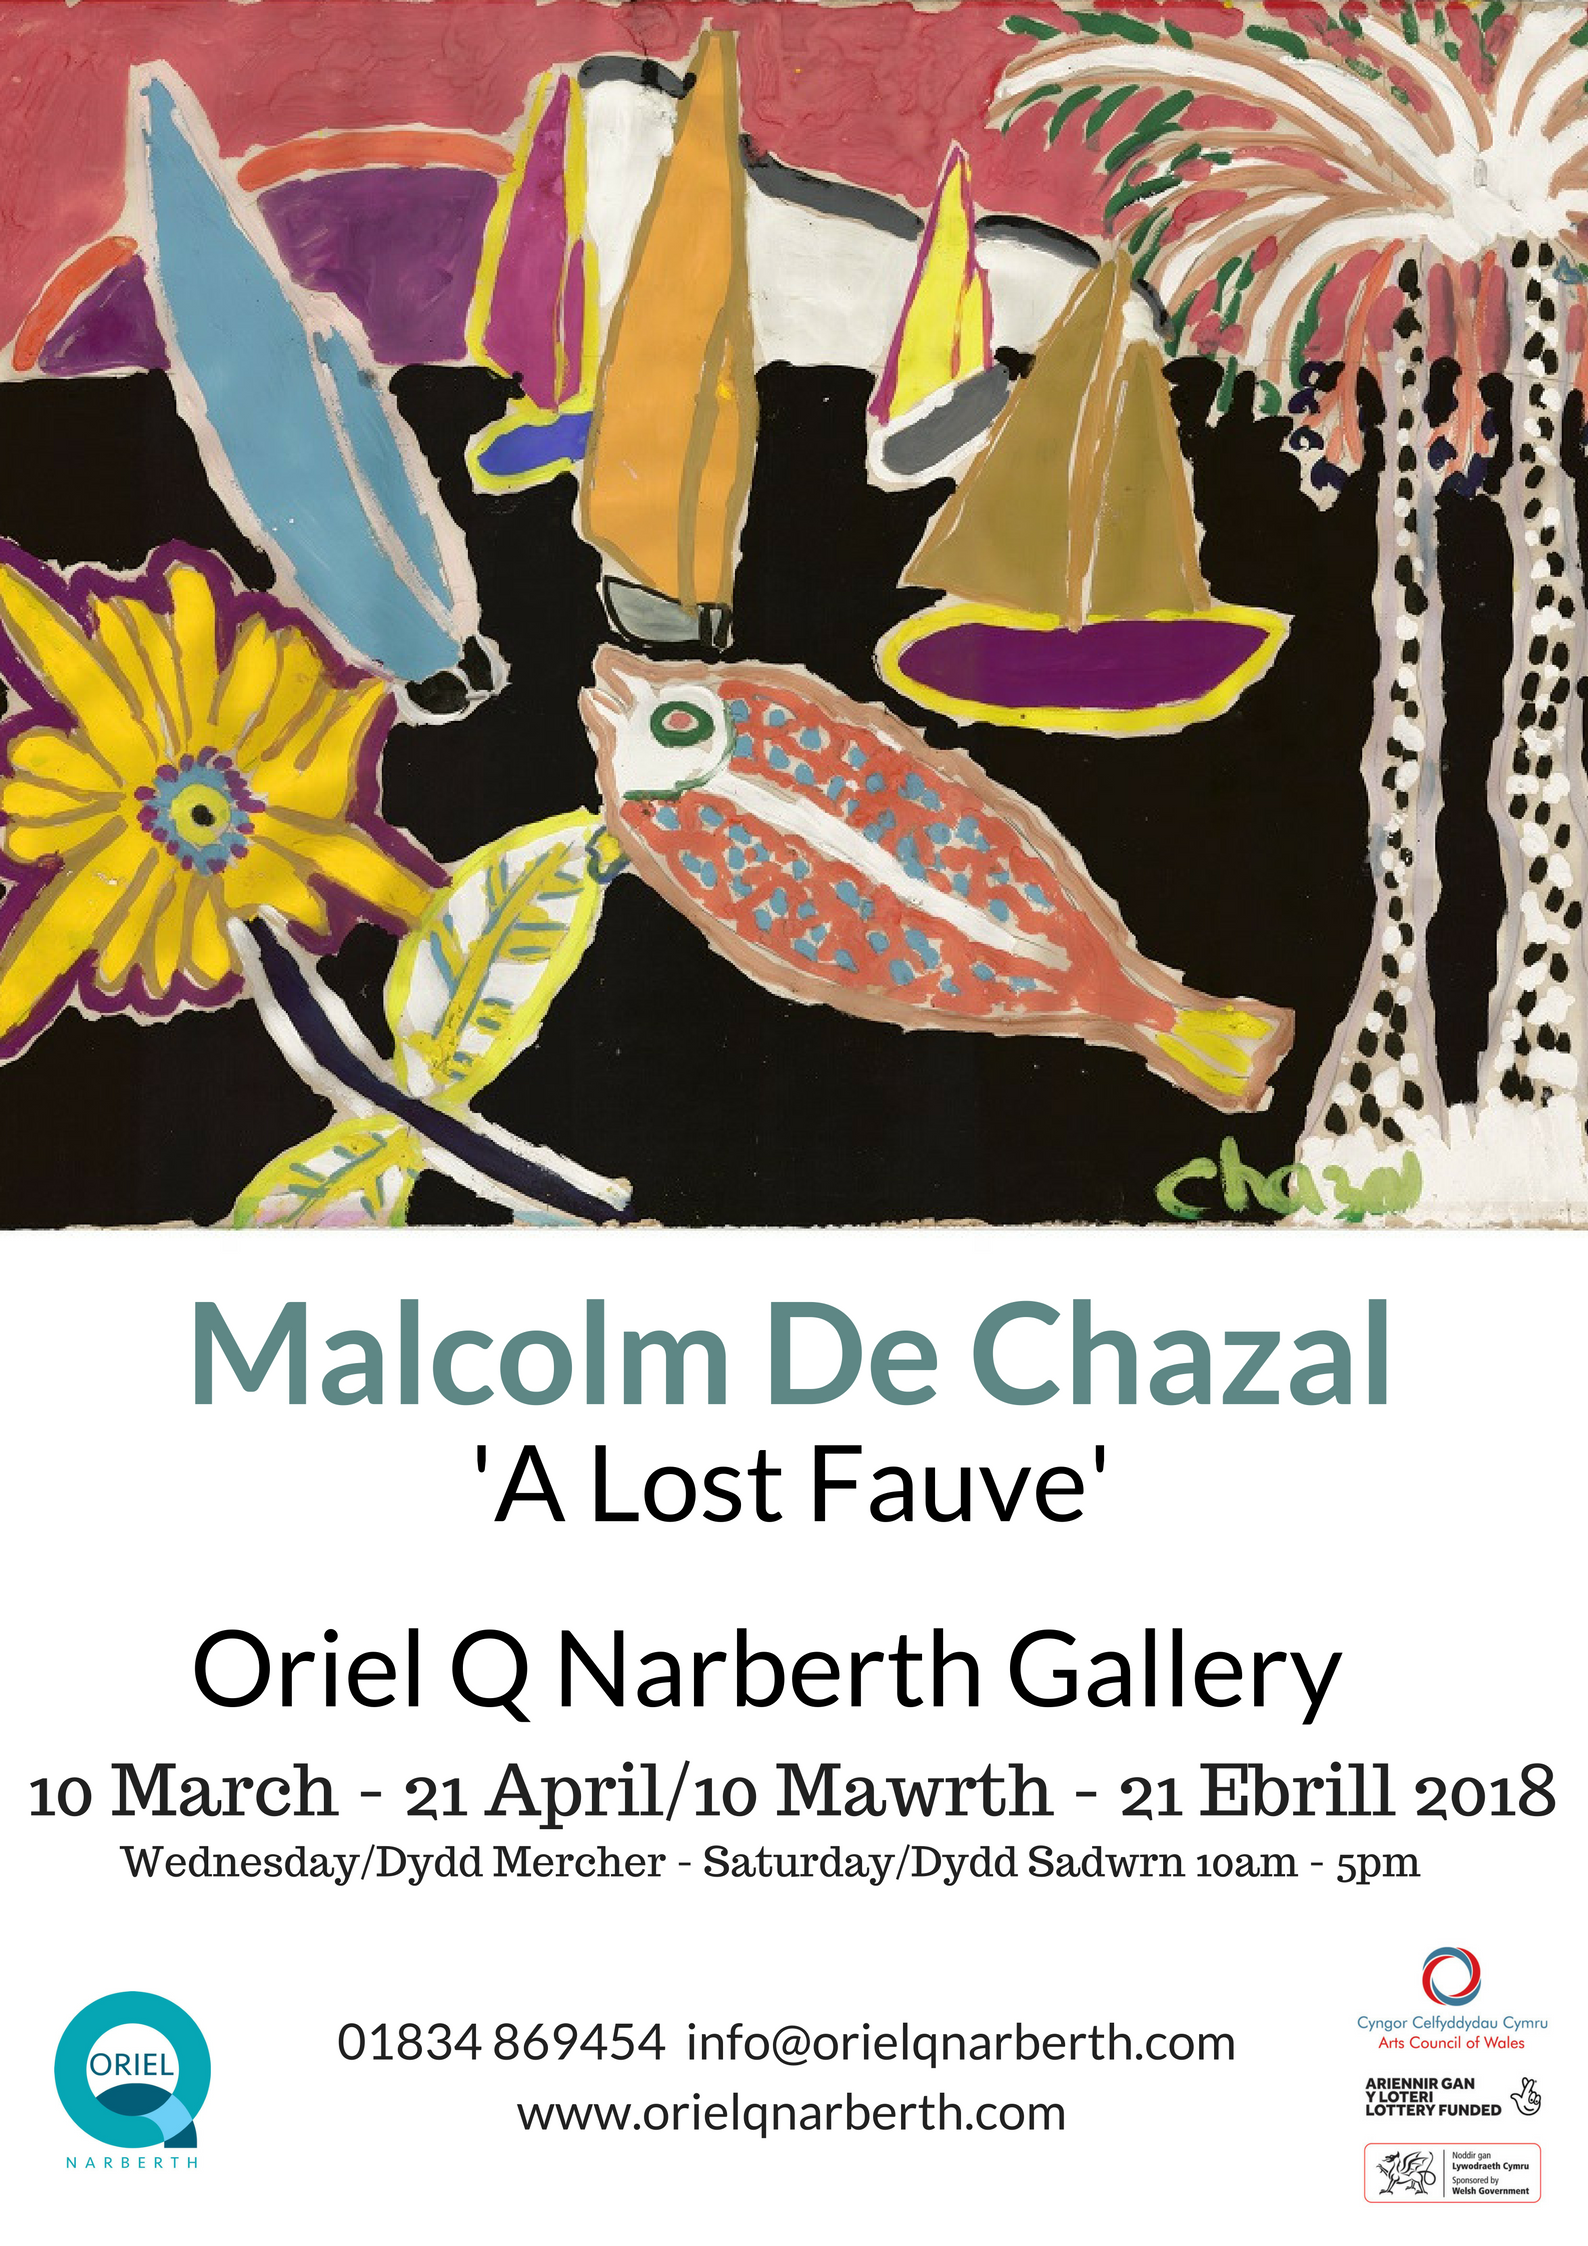 malcolm de chazal poster updated 2018.png